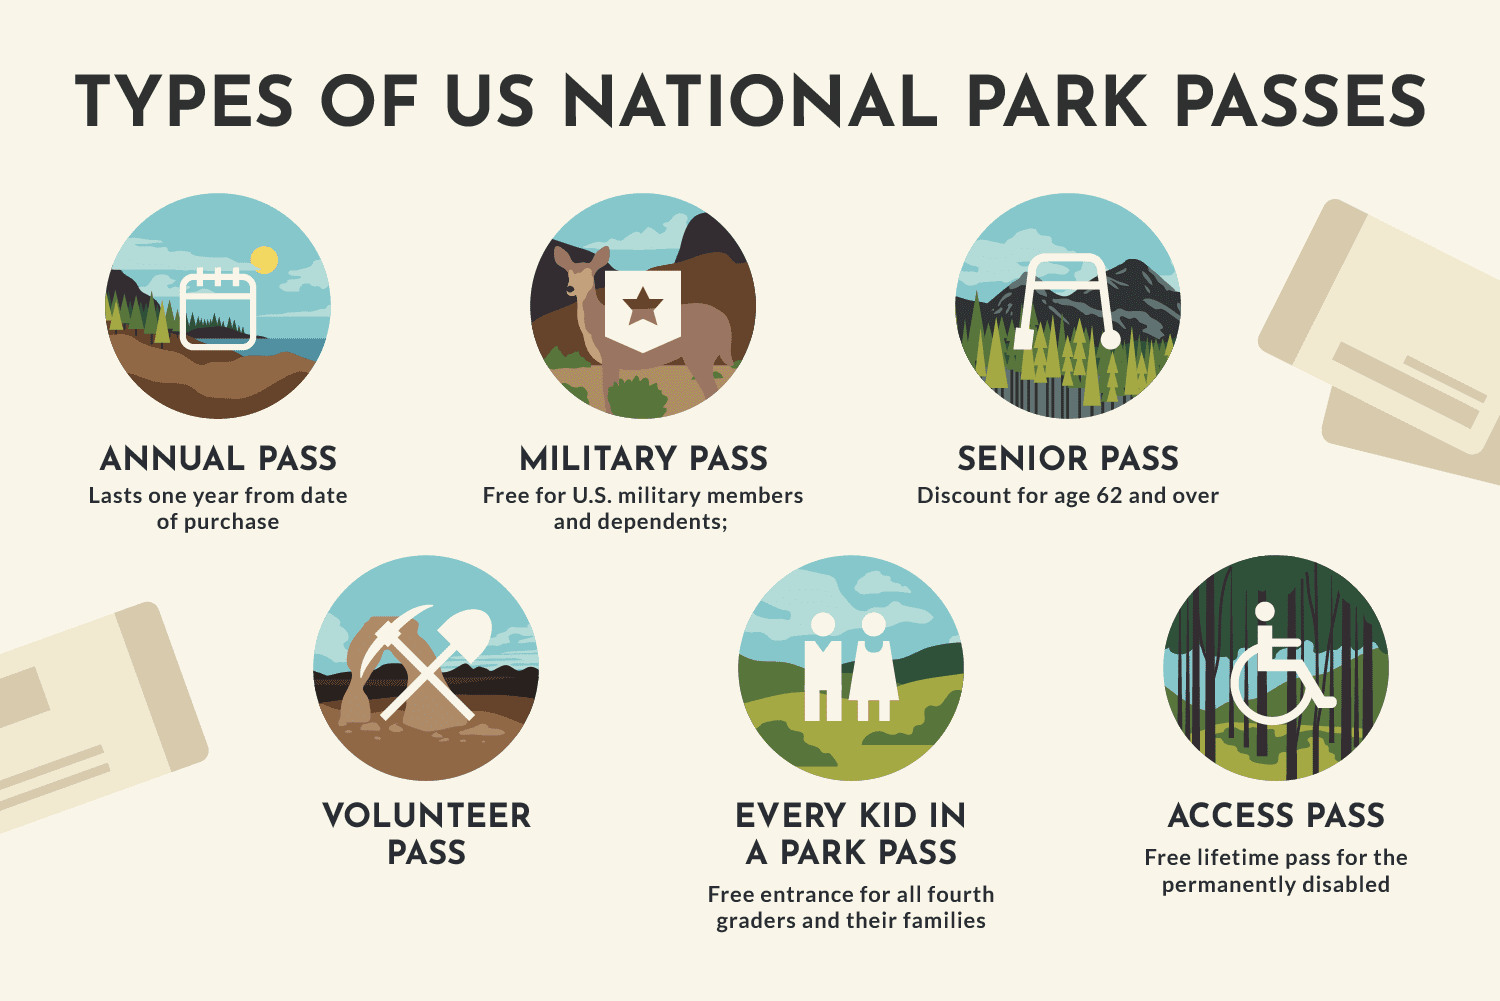 Obtaining National Park Passes